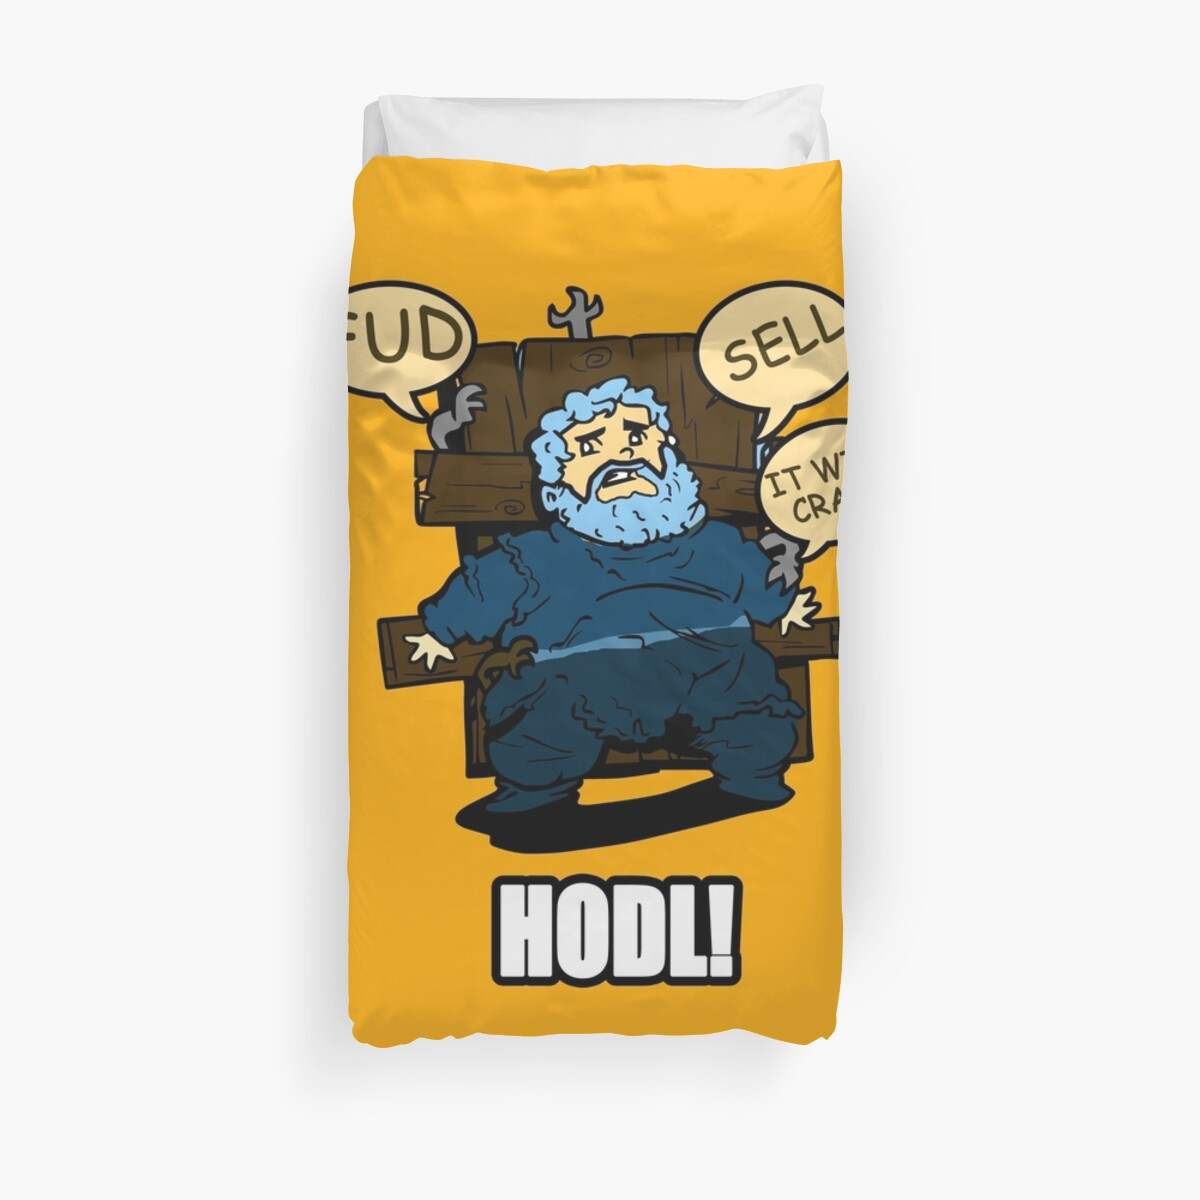 HODL It will crash Funny Bitcoin T shirt Design by hip-hop-art